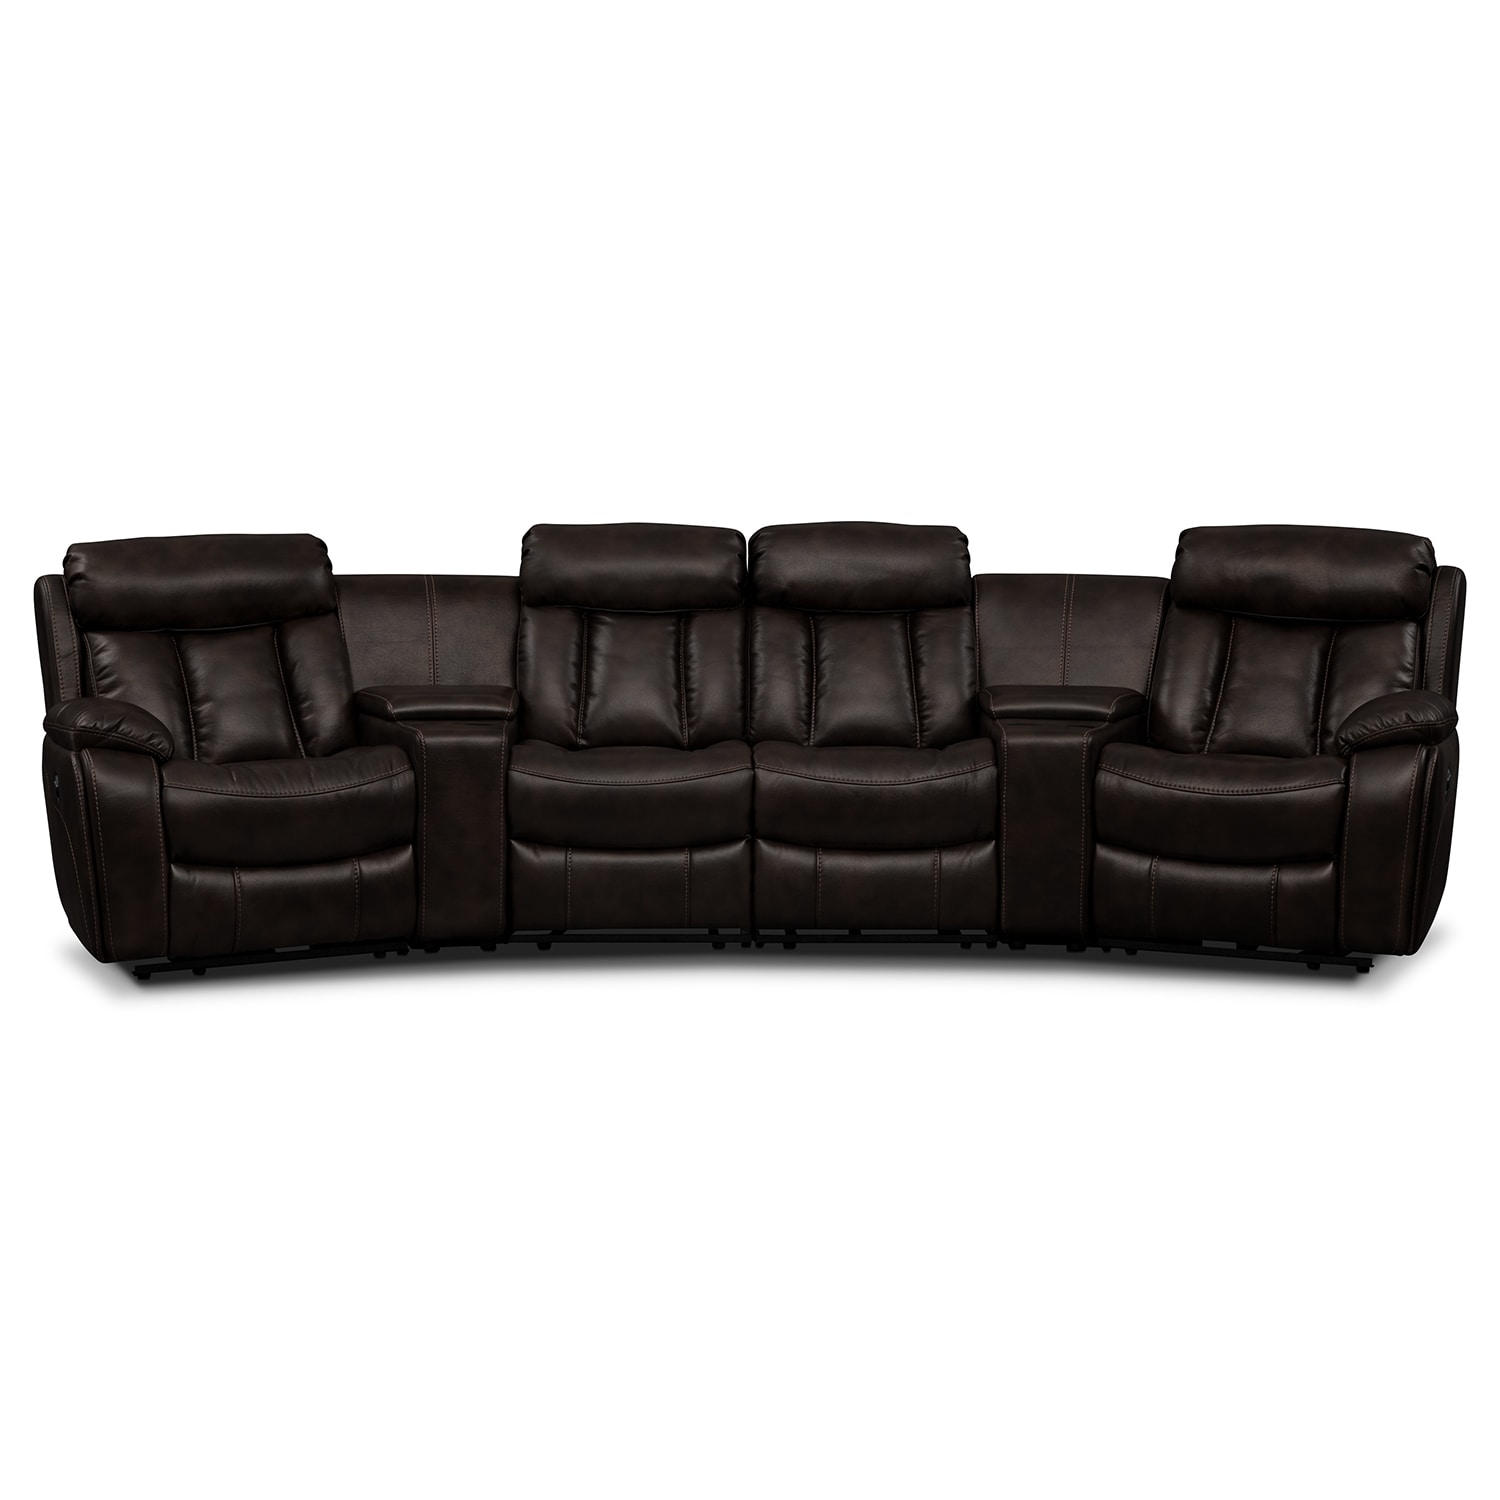 Diablo 6-Piece Power Reclining Sectional with 2 Armless Power Chairs - Walnut